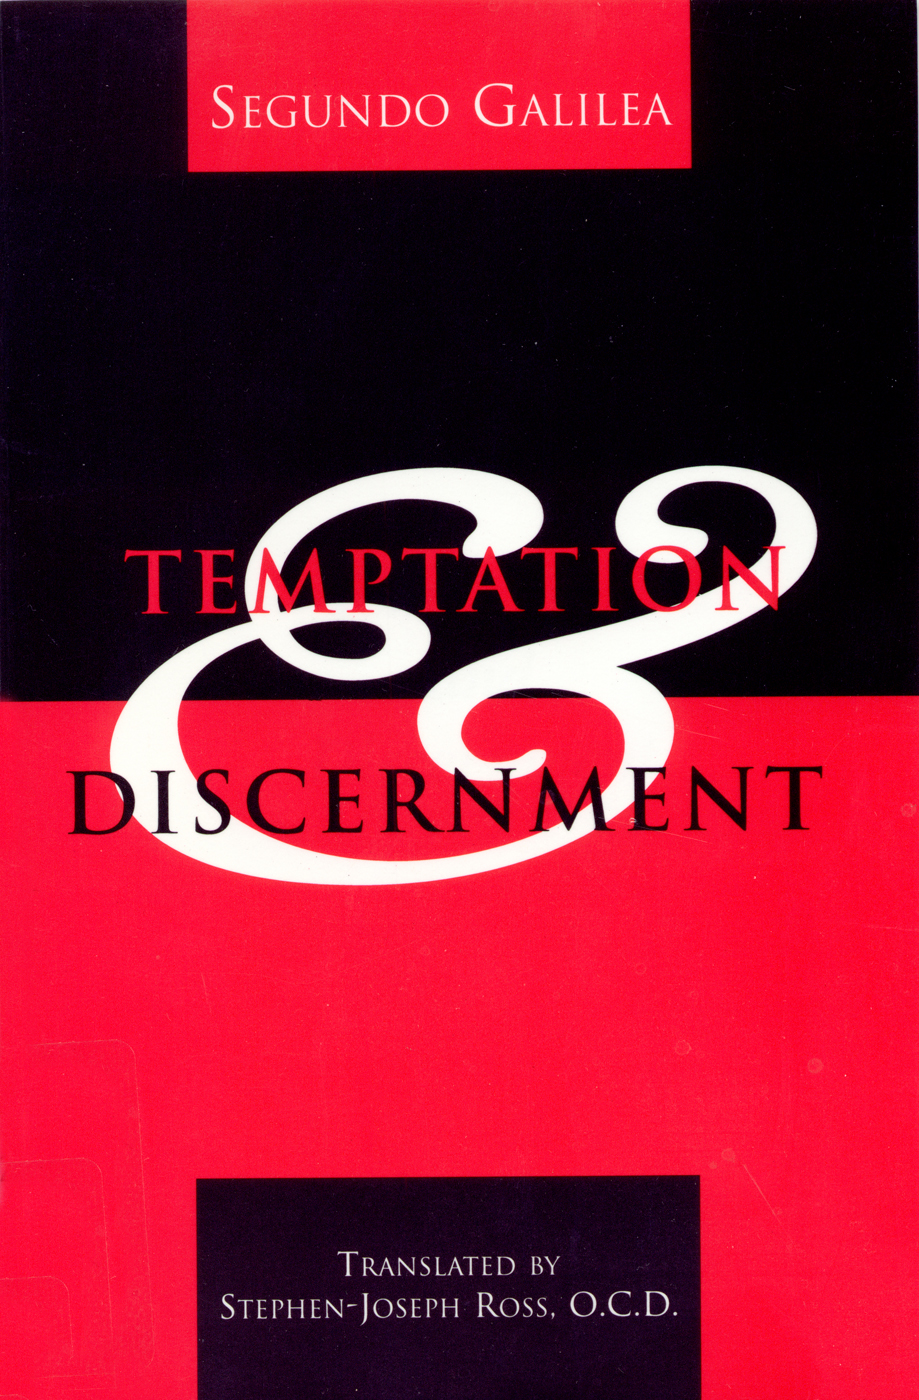 Temptation and Discernment